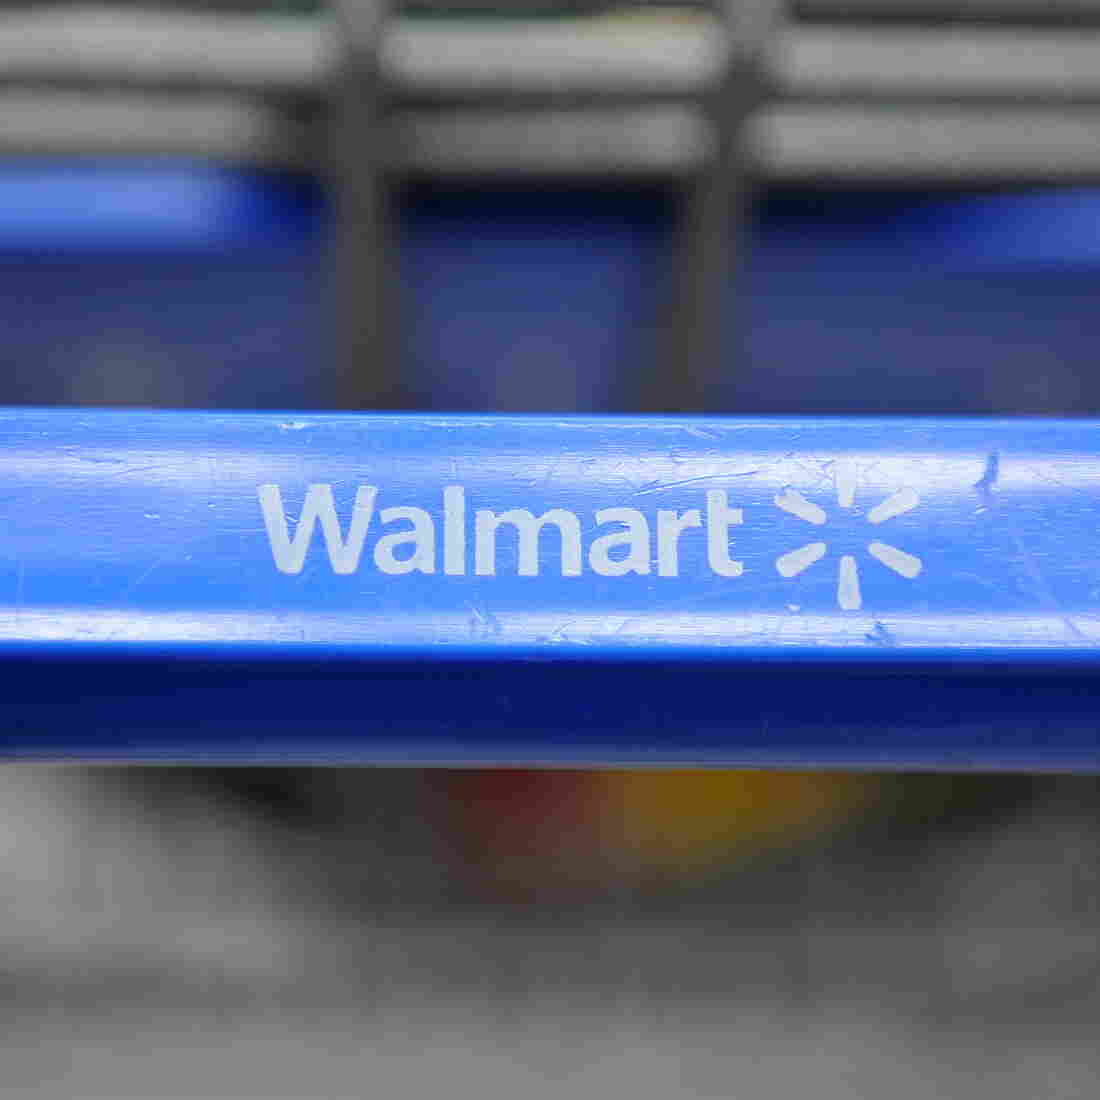 Wal-Mart Reclaims No. 1 Spot On 'Fortune' 500 List